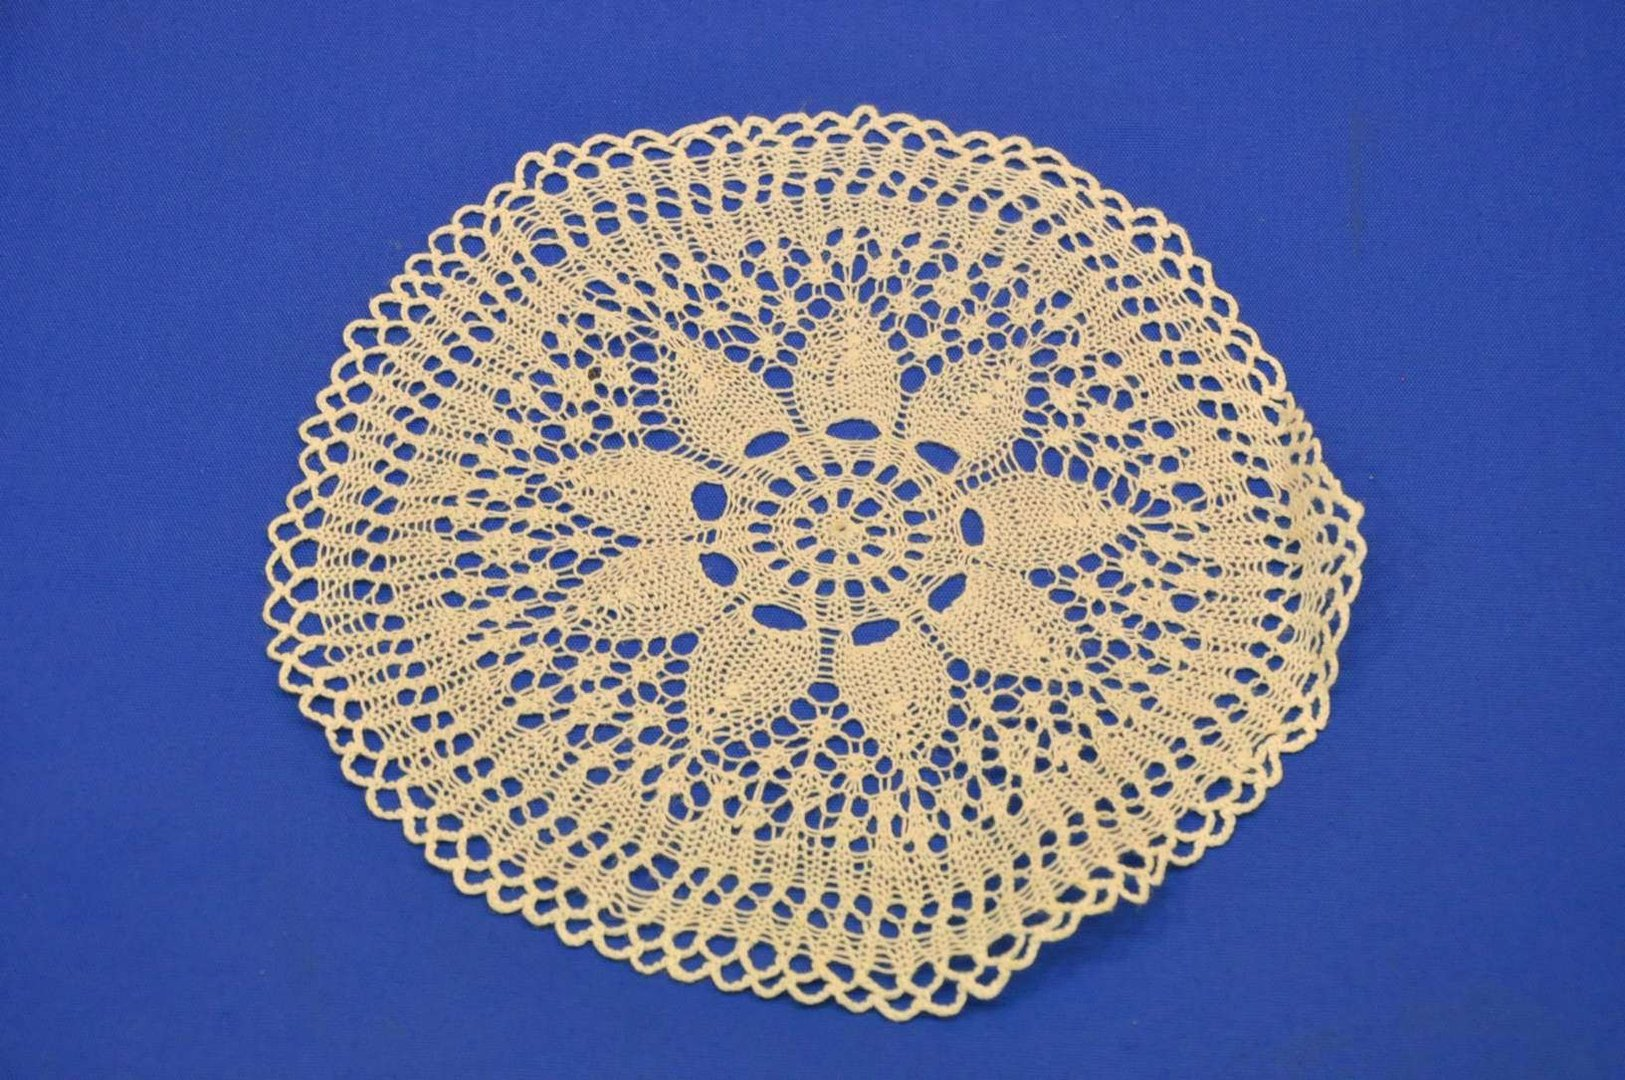 dc39df3552 Bobbin lace doily in white art nouveau flower - at Shop KuSeRa